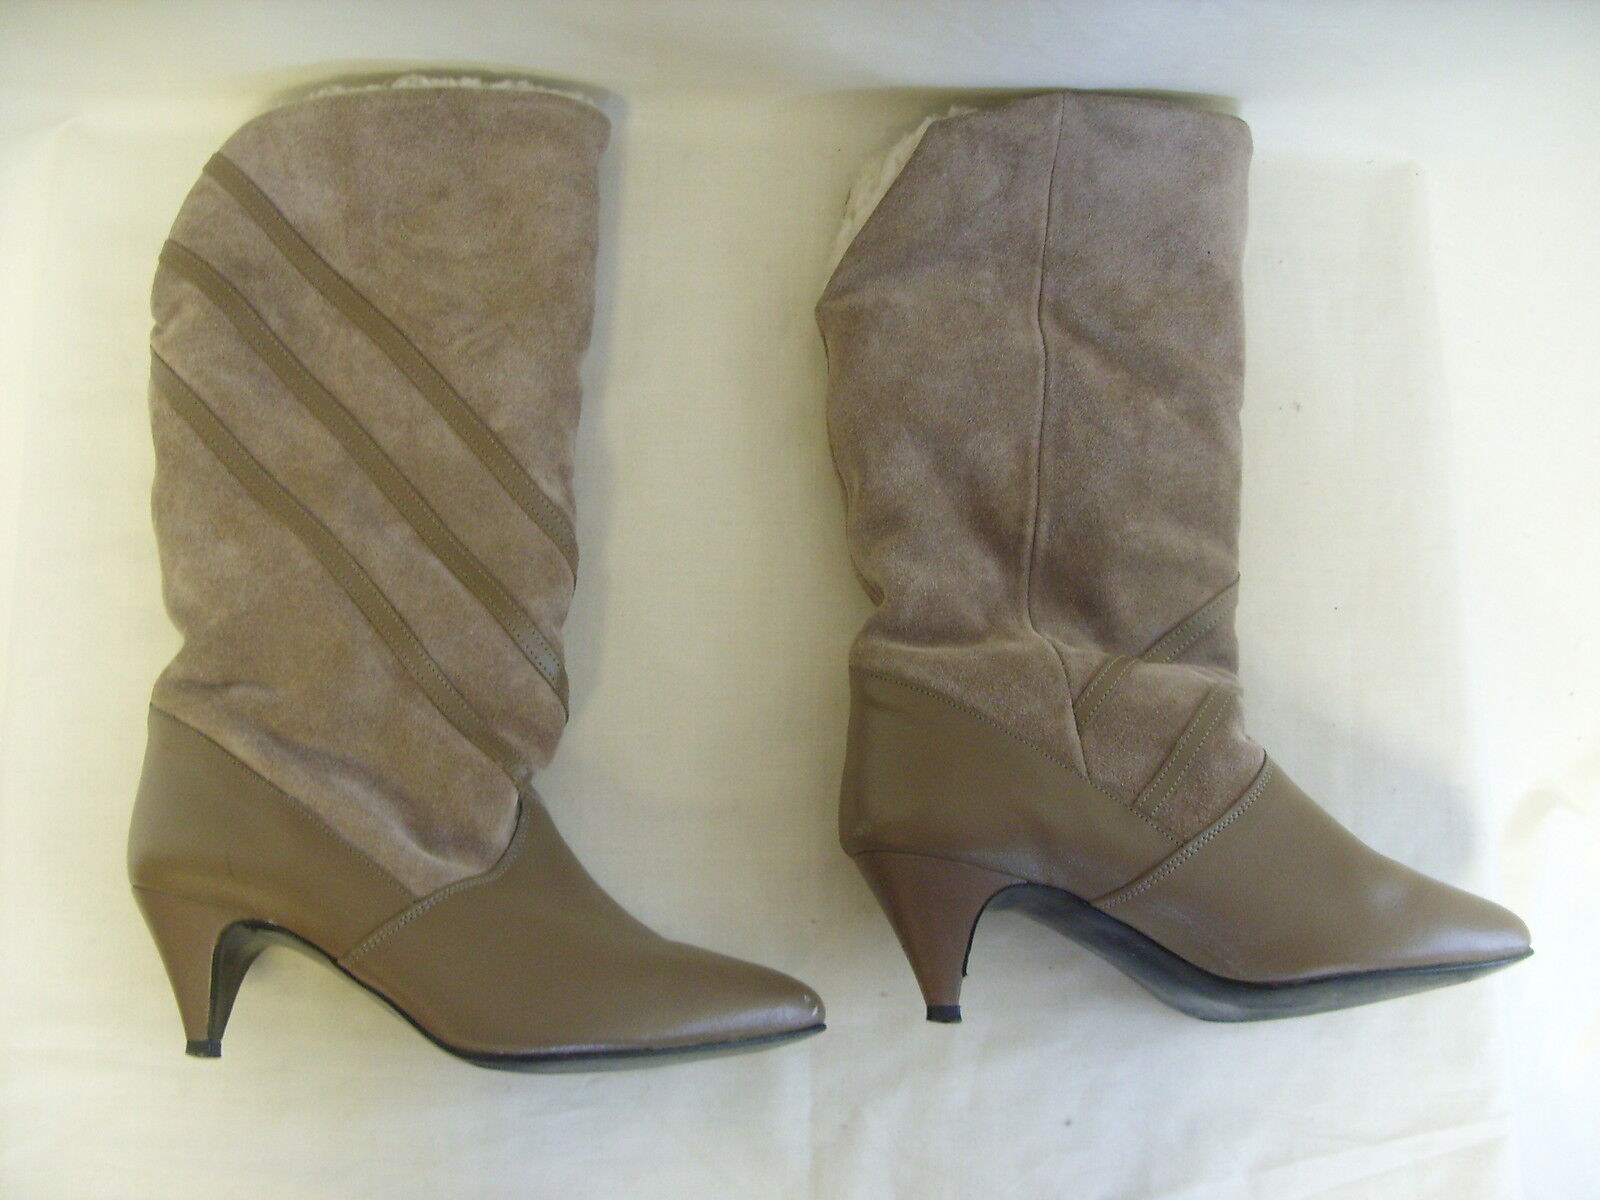 Ladies Boots - Unknown, size 4.5, light brown, leather & suede, 80's - 3028